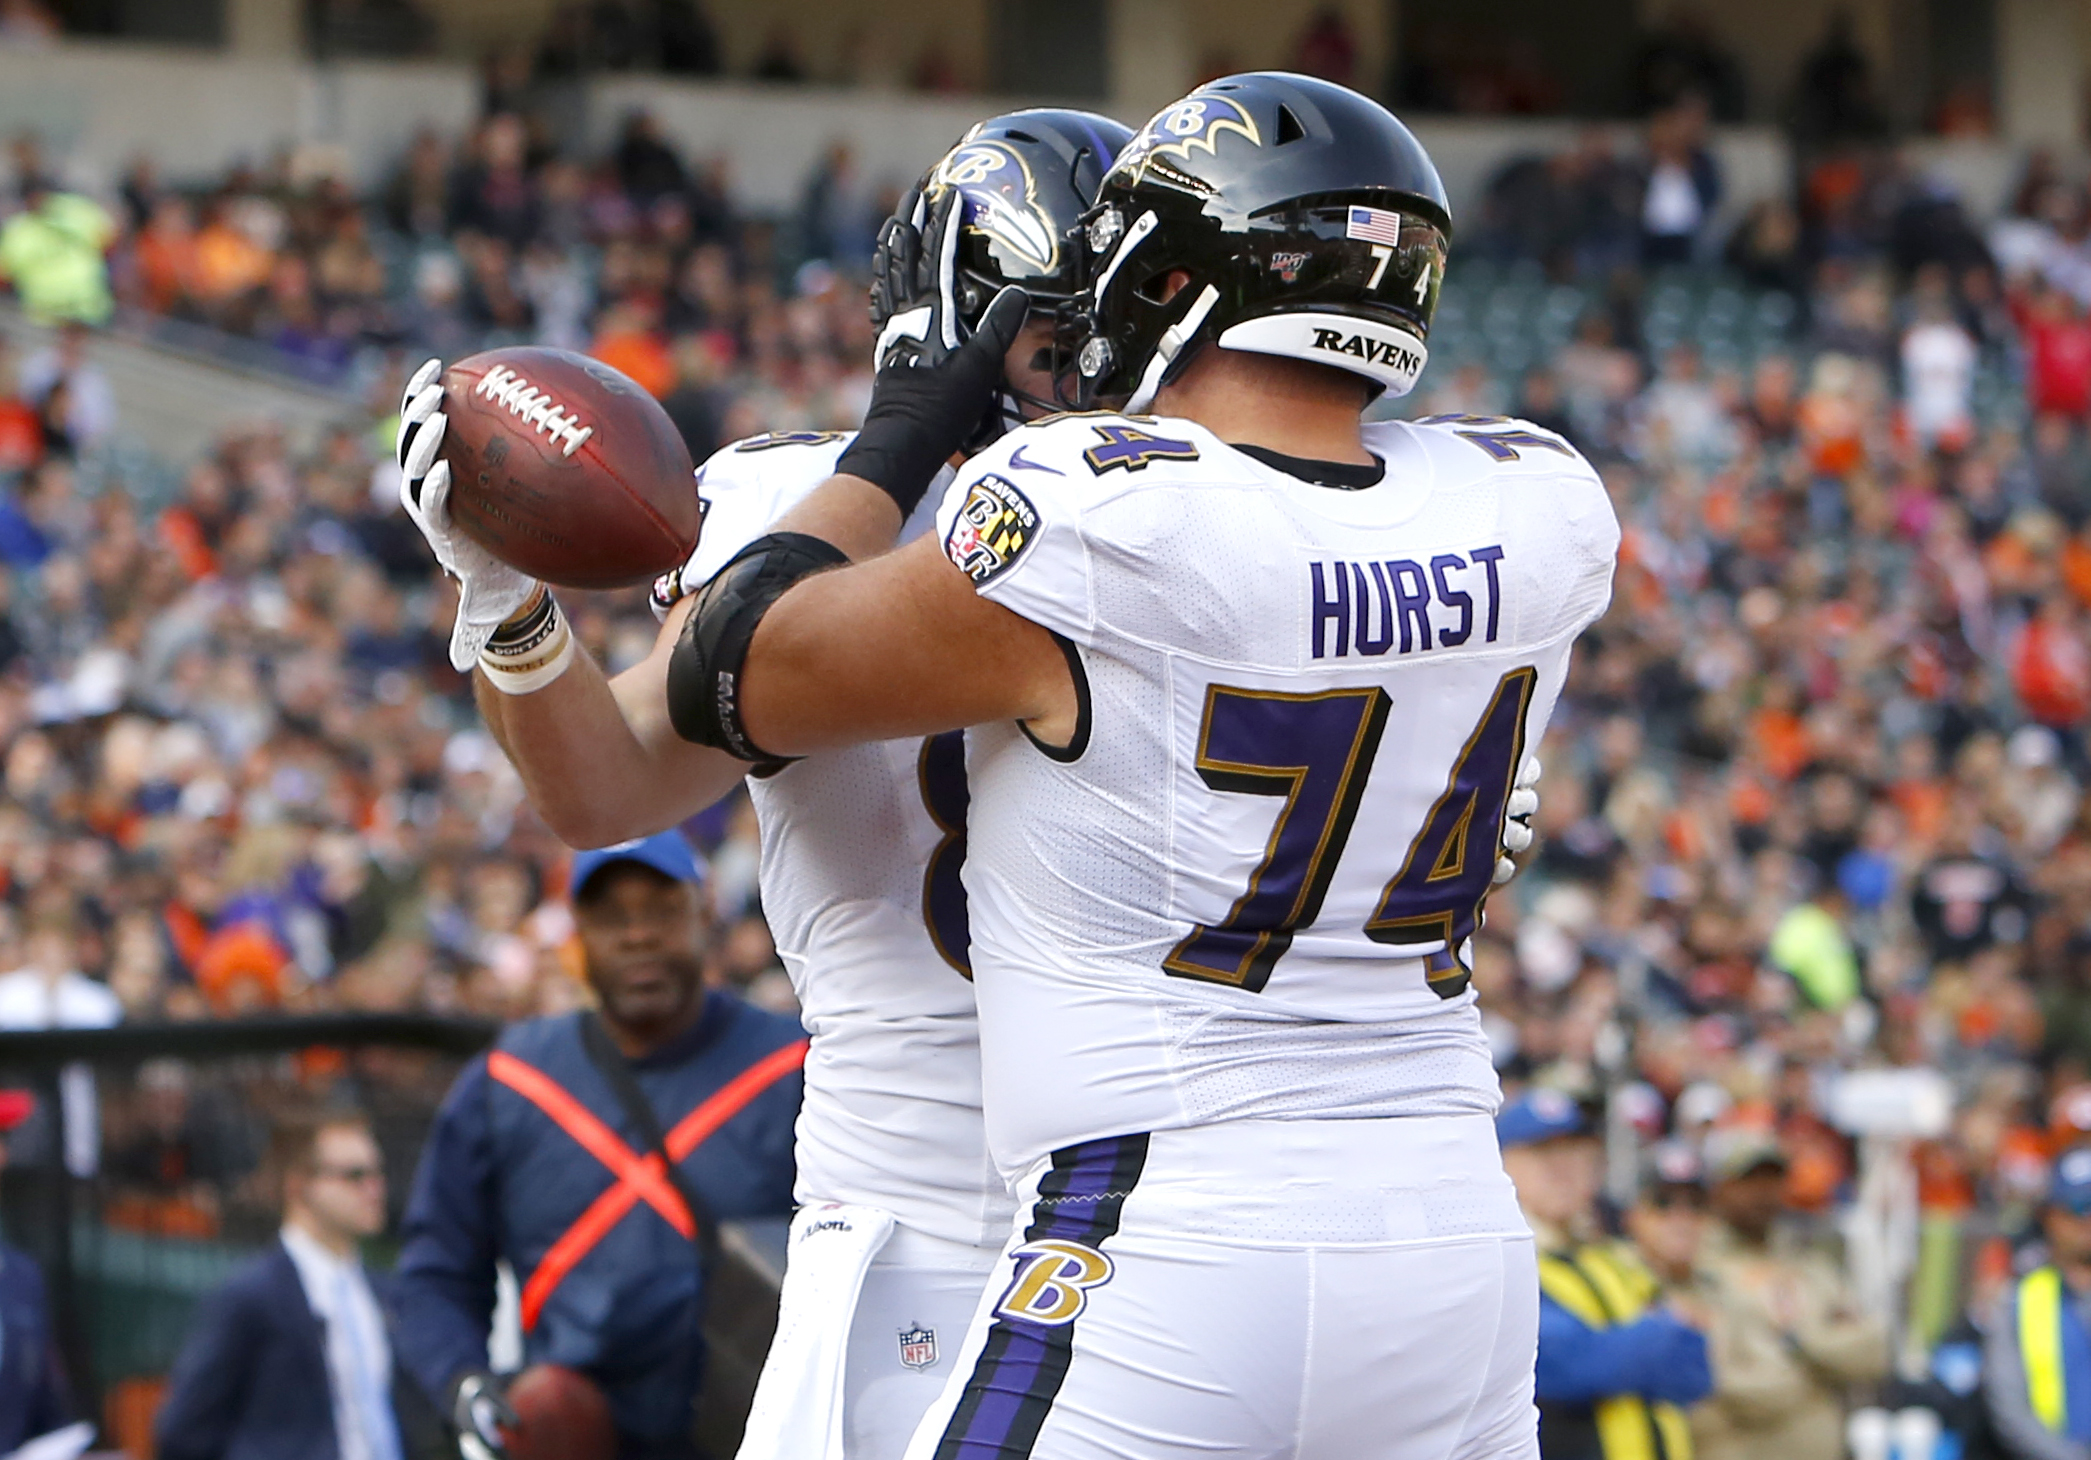 Video: James Hurst Does Solid Job in Place of Injured Ronnie Stanley